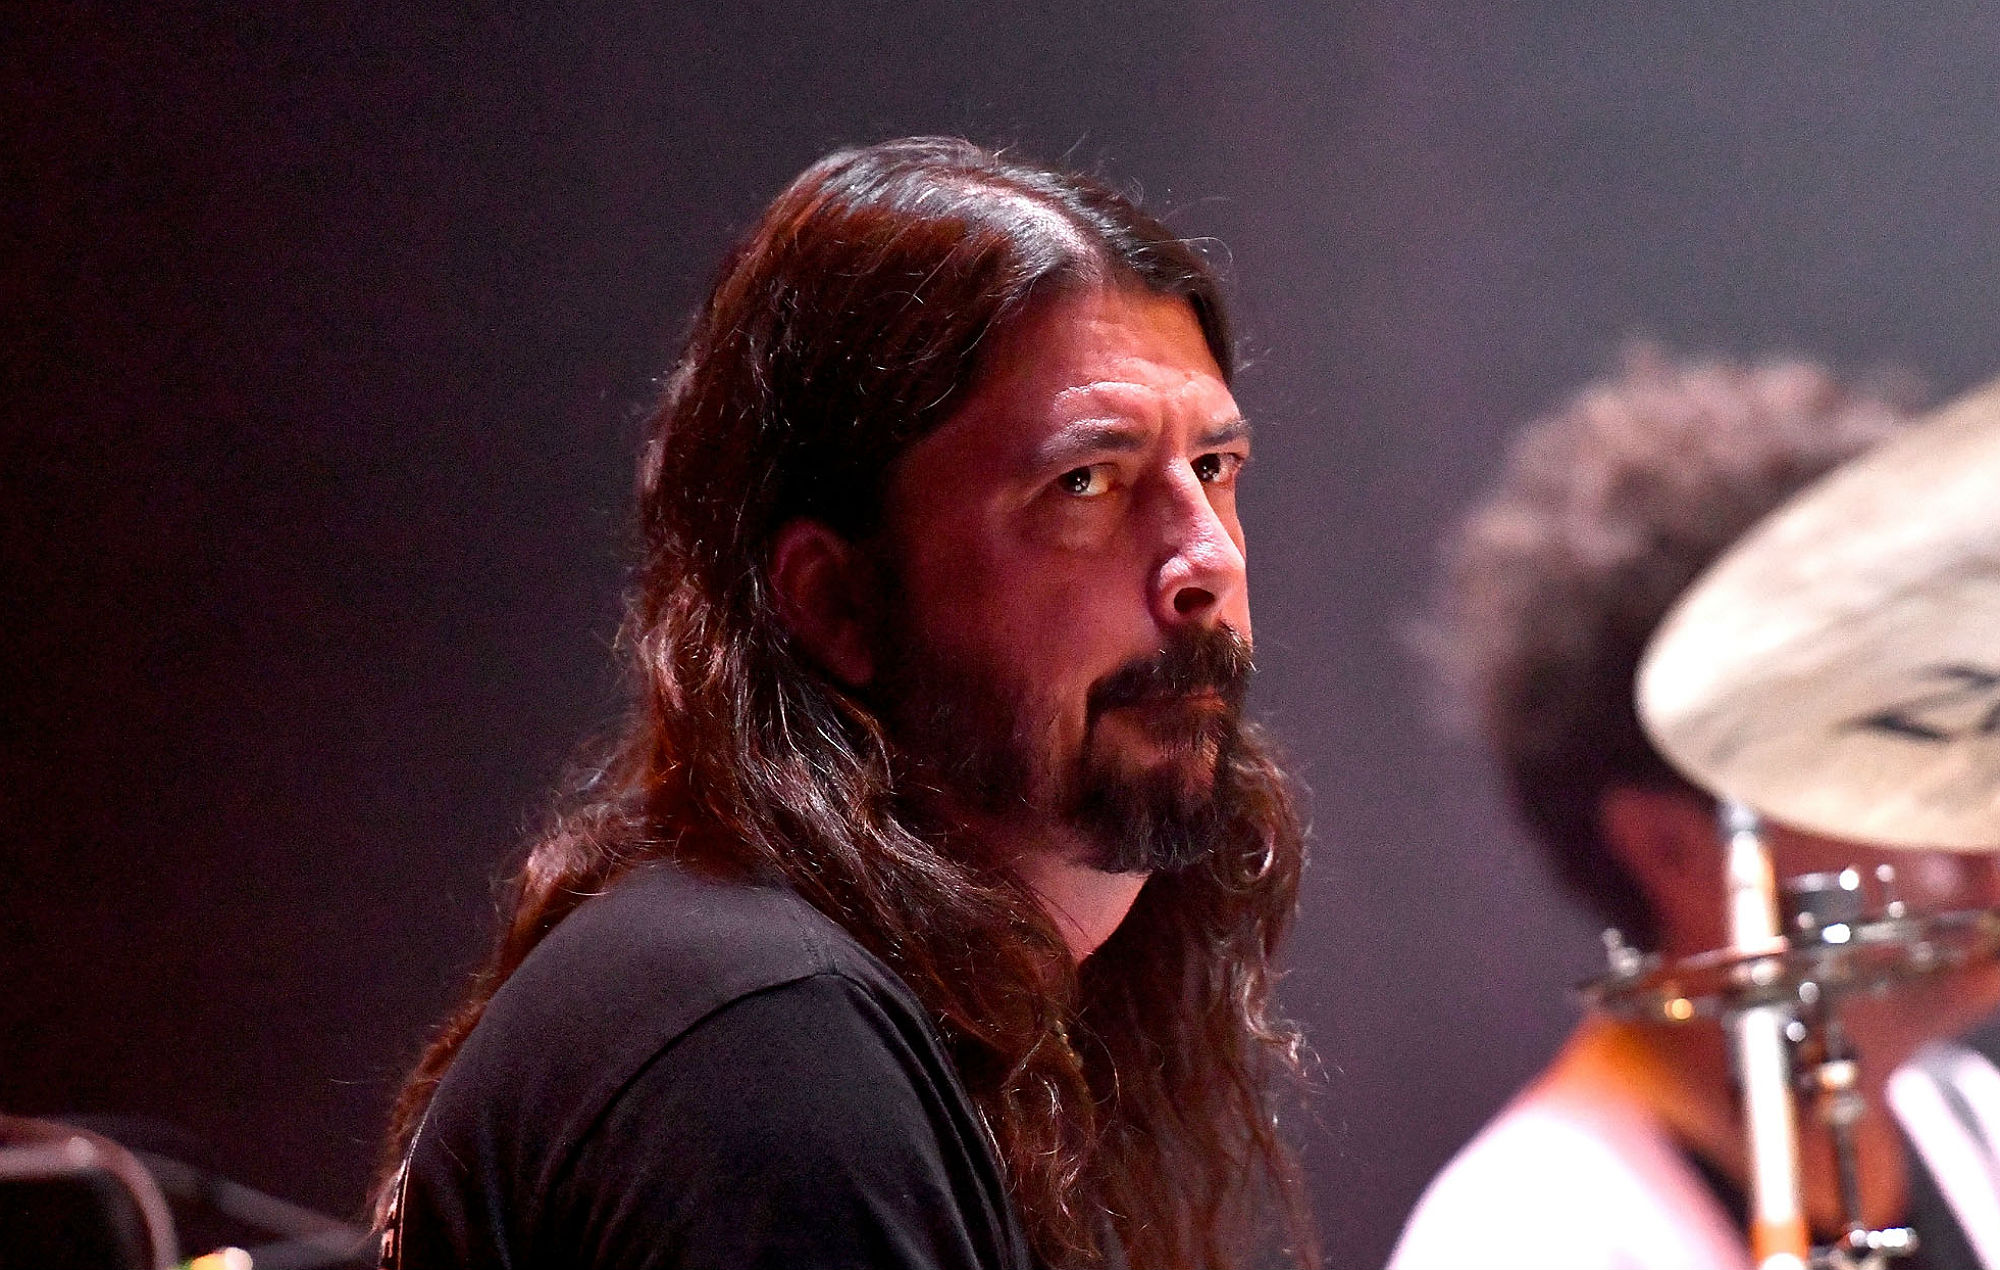 Watch Dave Grohl Fall Off Stage At Foo Fighters First Gig